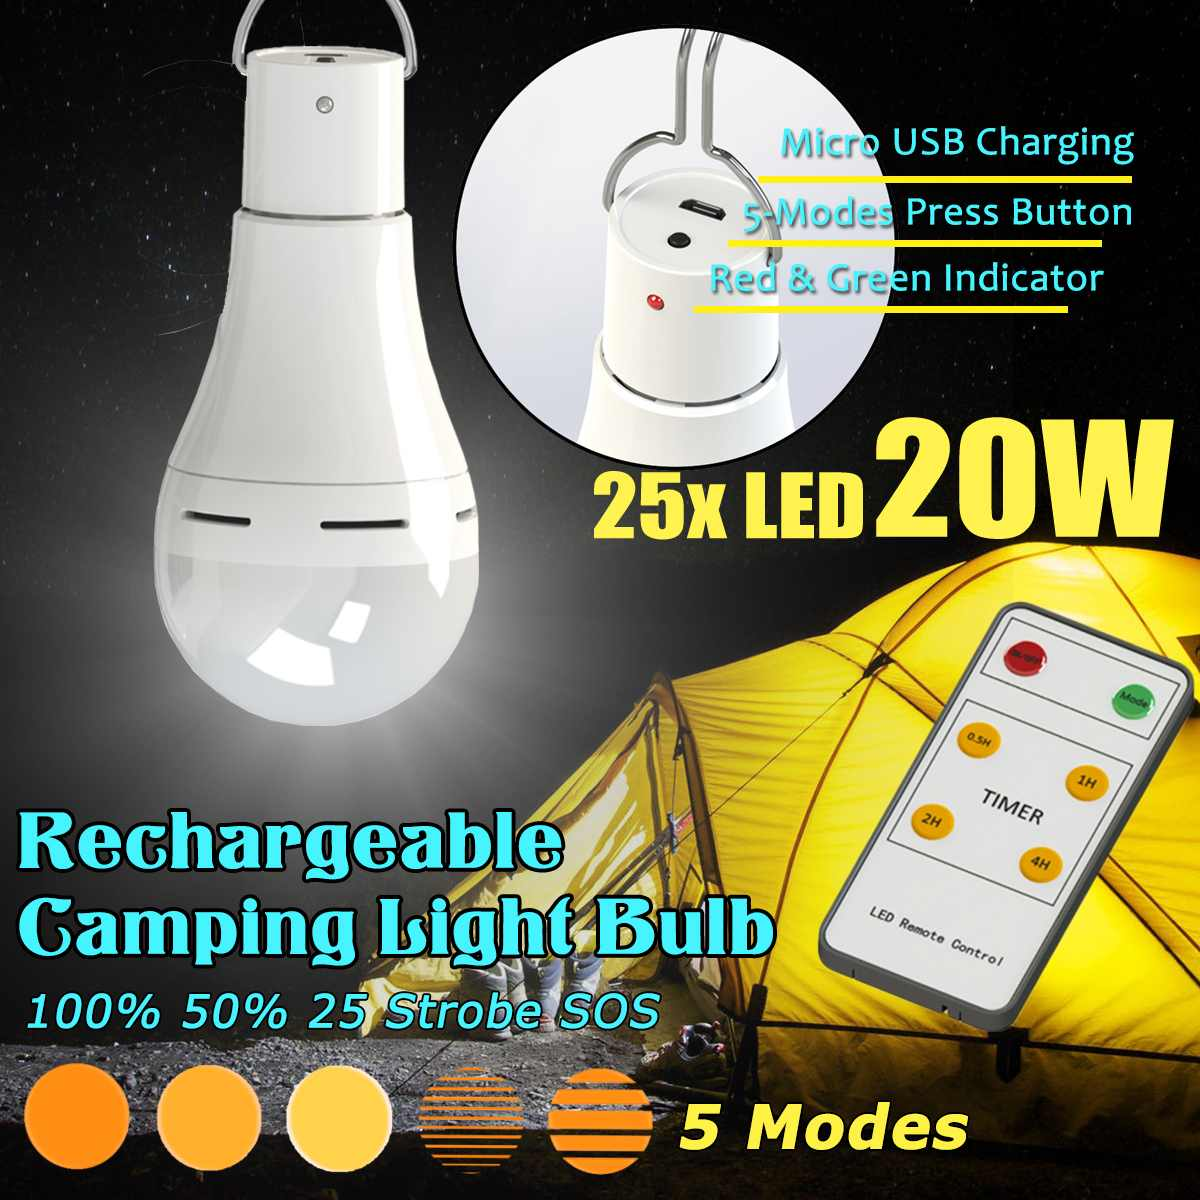 2pcs DC5V 20W Dimmable USB Charging Rechargeable <font><b>Emergency</b></font> Outdoor Tent Camping LED <font><b>Light</b></font> <font><b>Bulb</b></font> With 6Keys Remote Control image